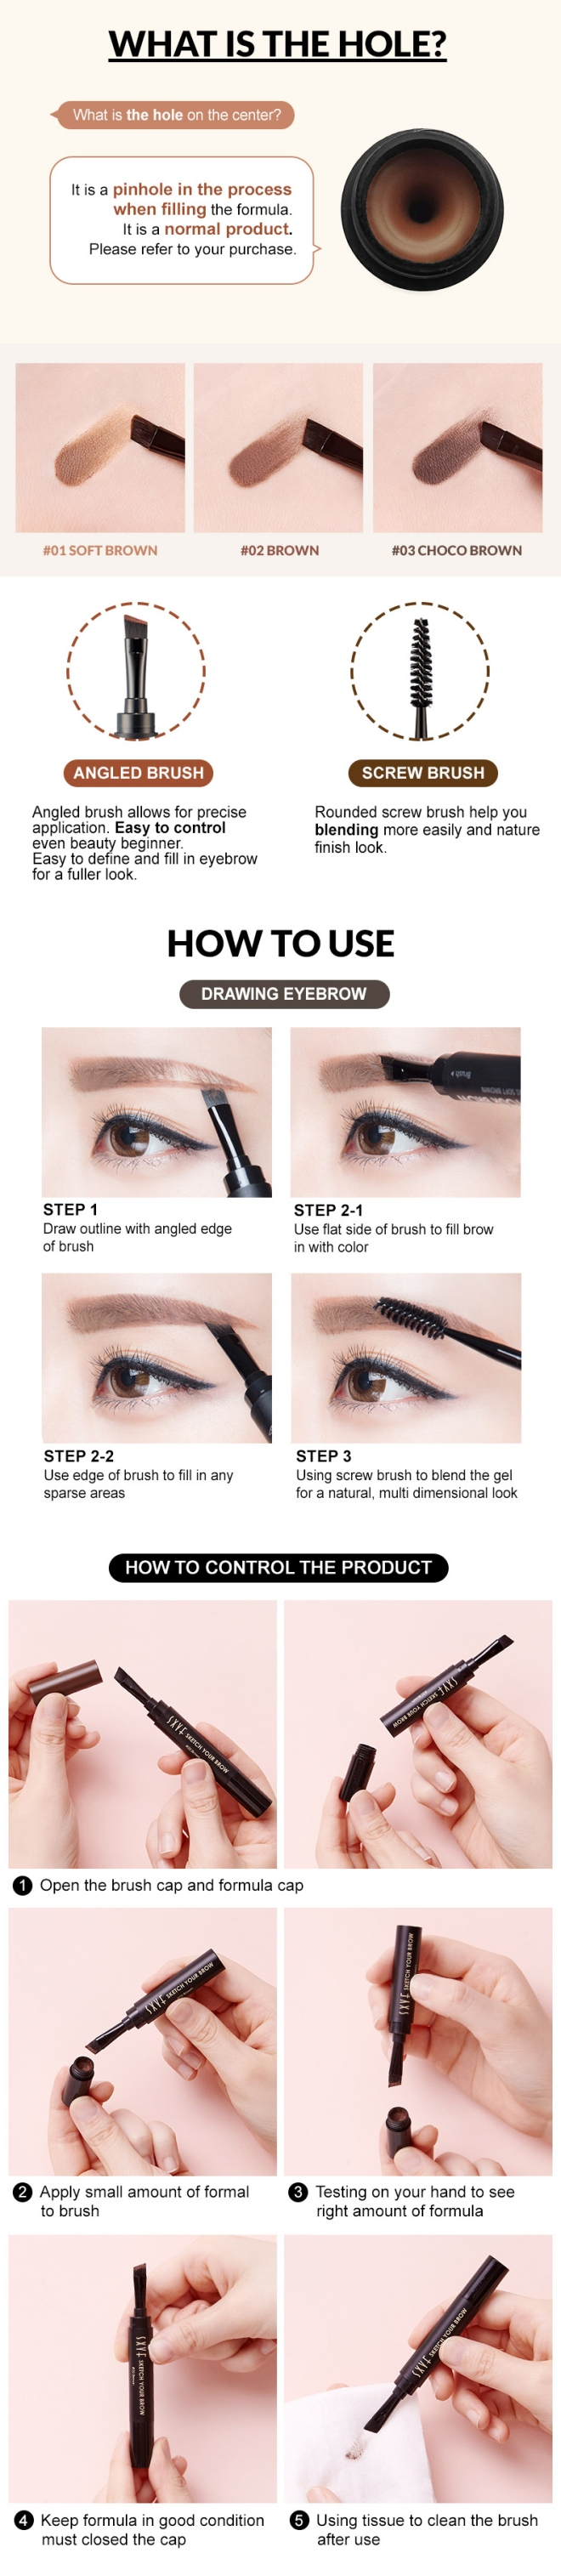 Sketch Your Brow (Info 03)